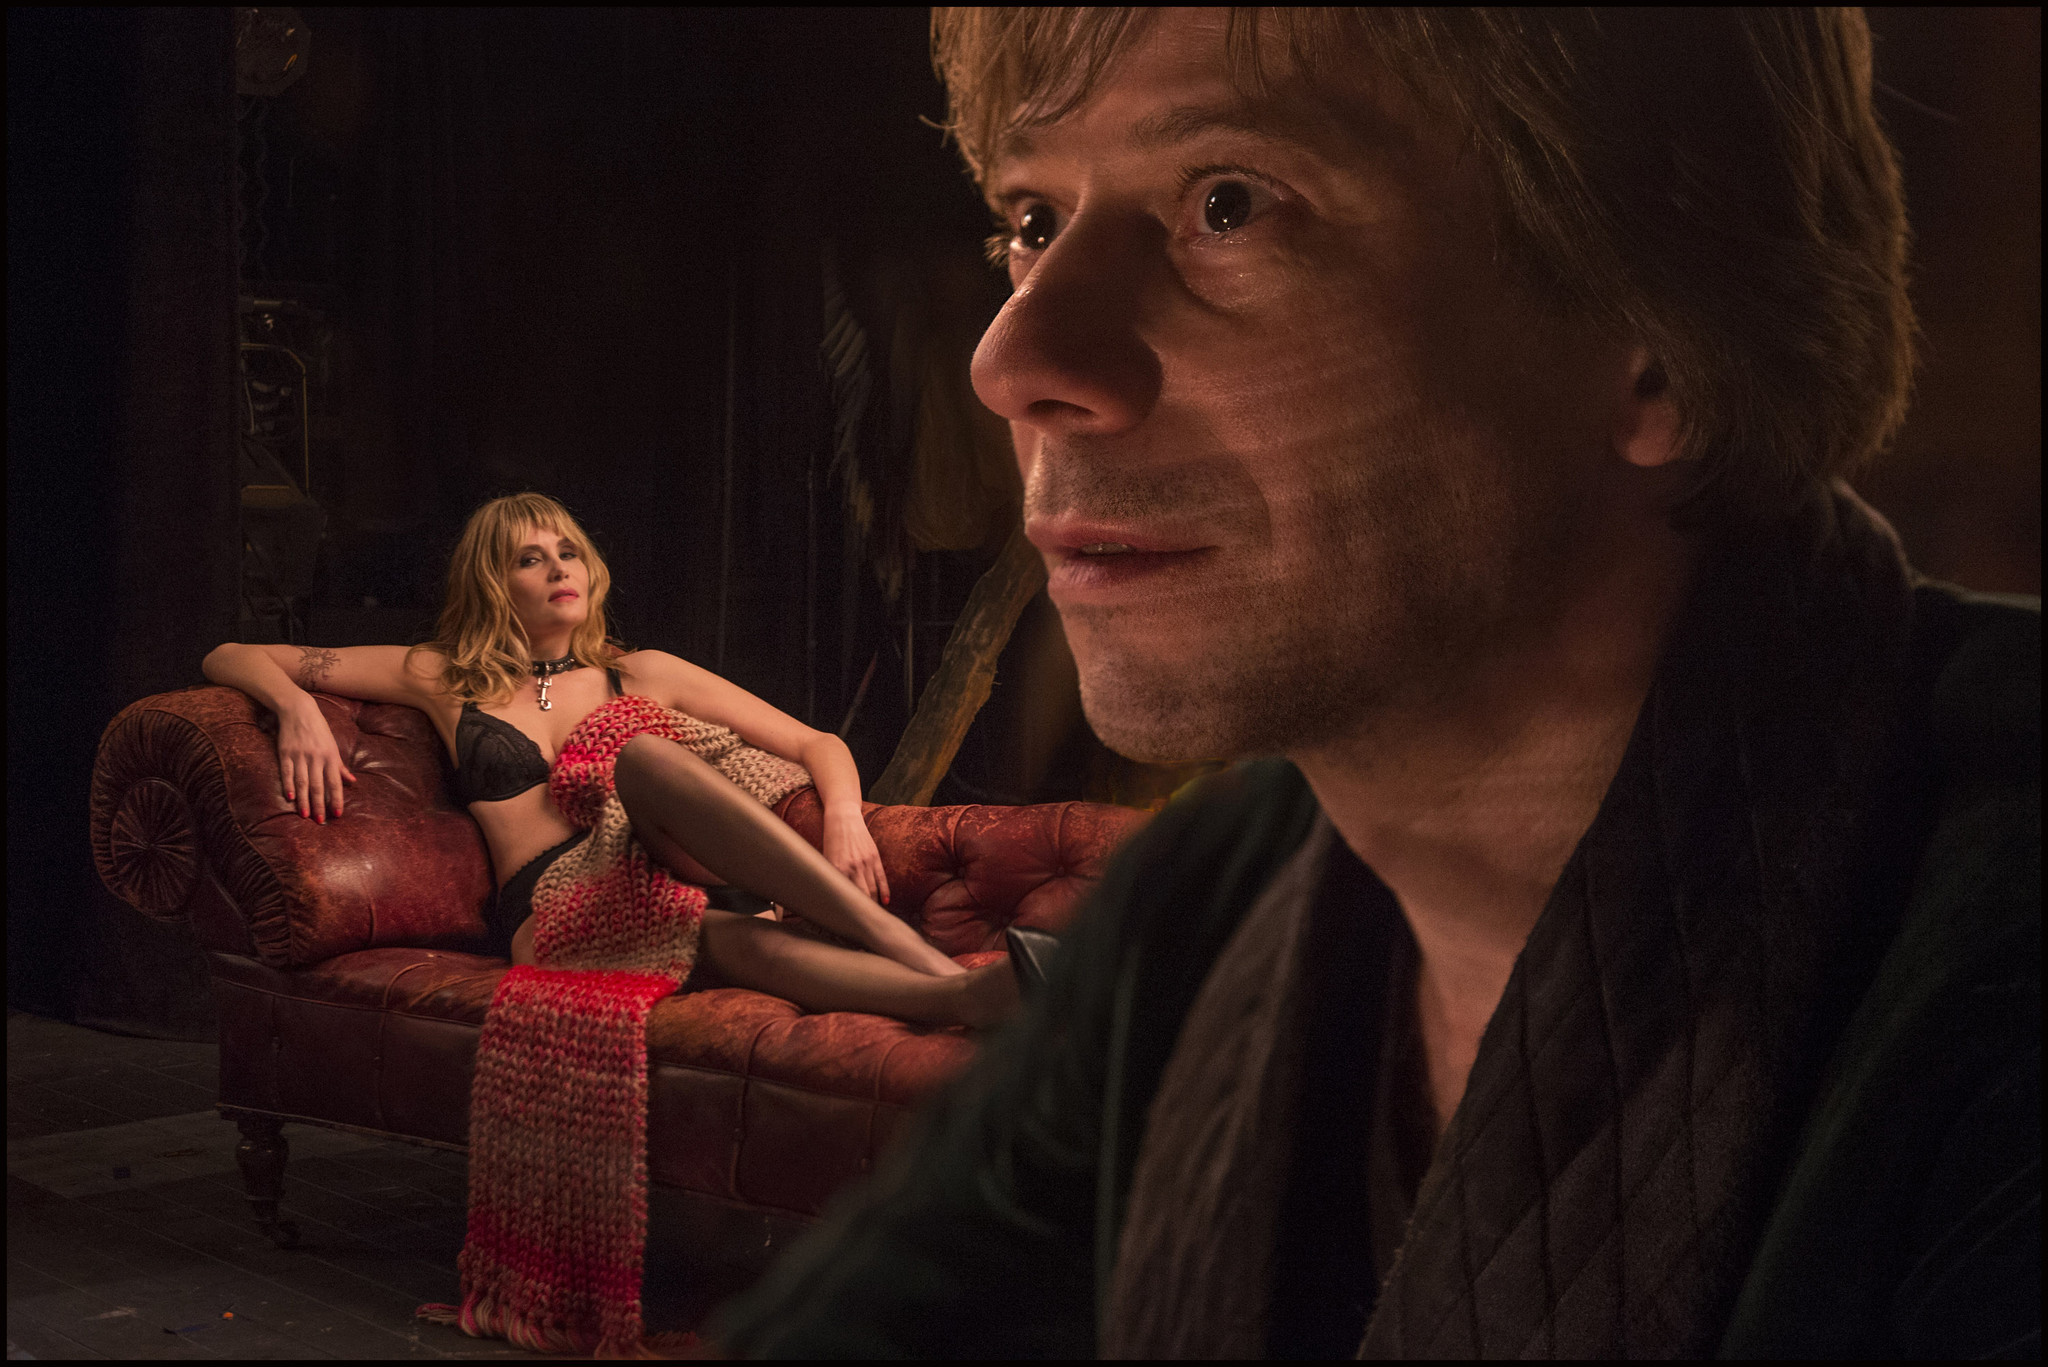 Vanda (Emmanuelle Seigner) and Thomas (Mathieu Amalric)